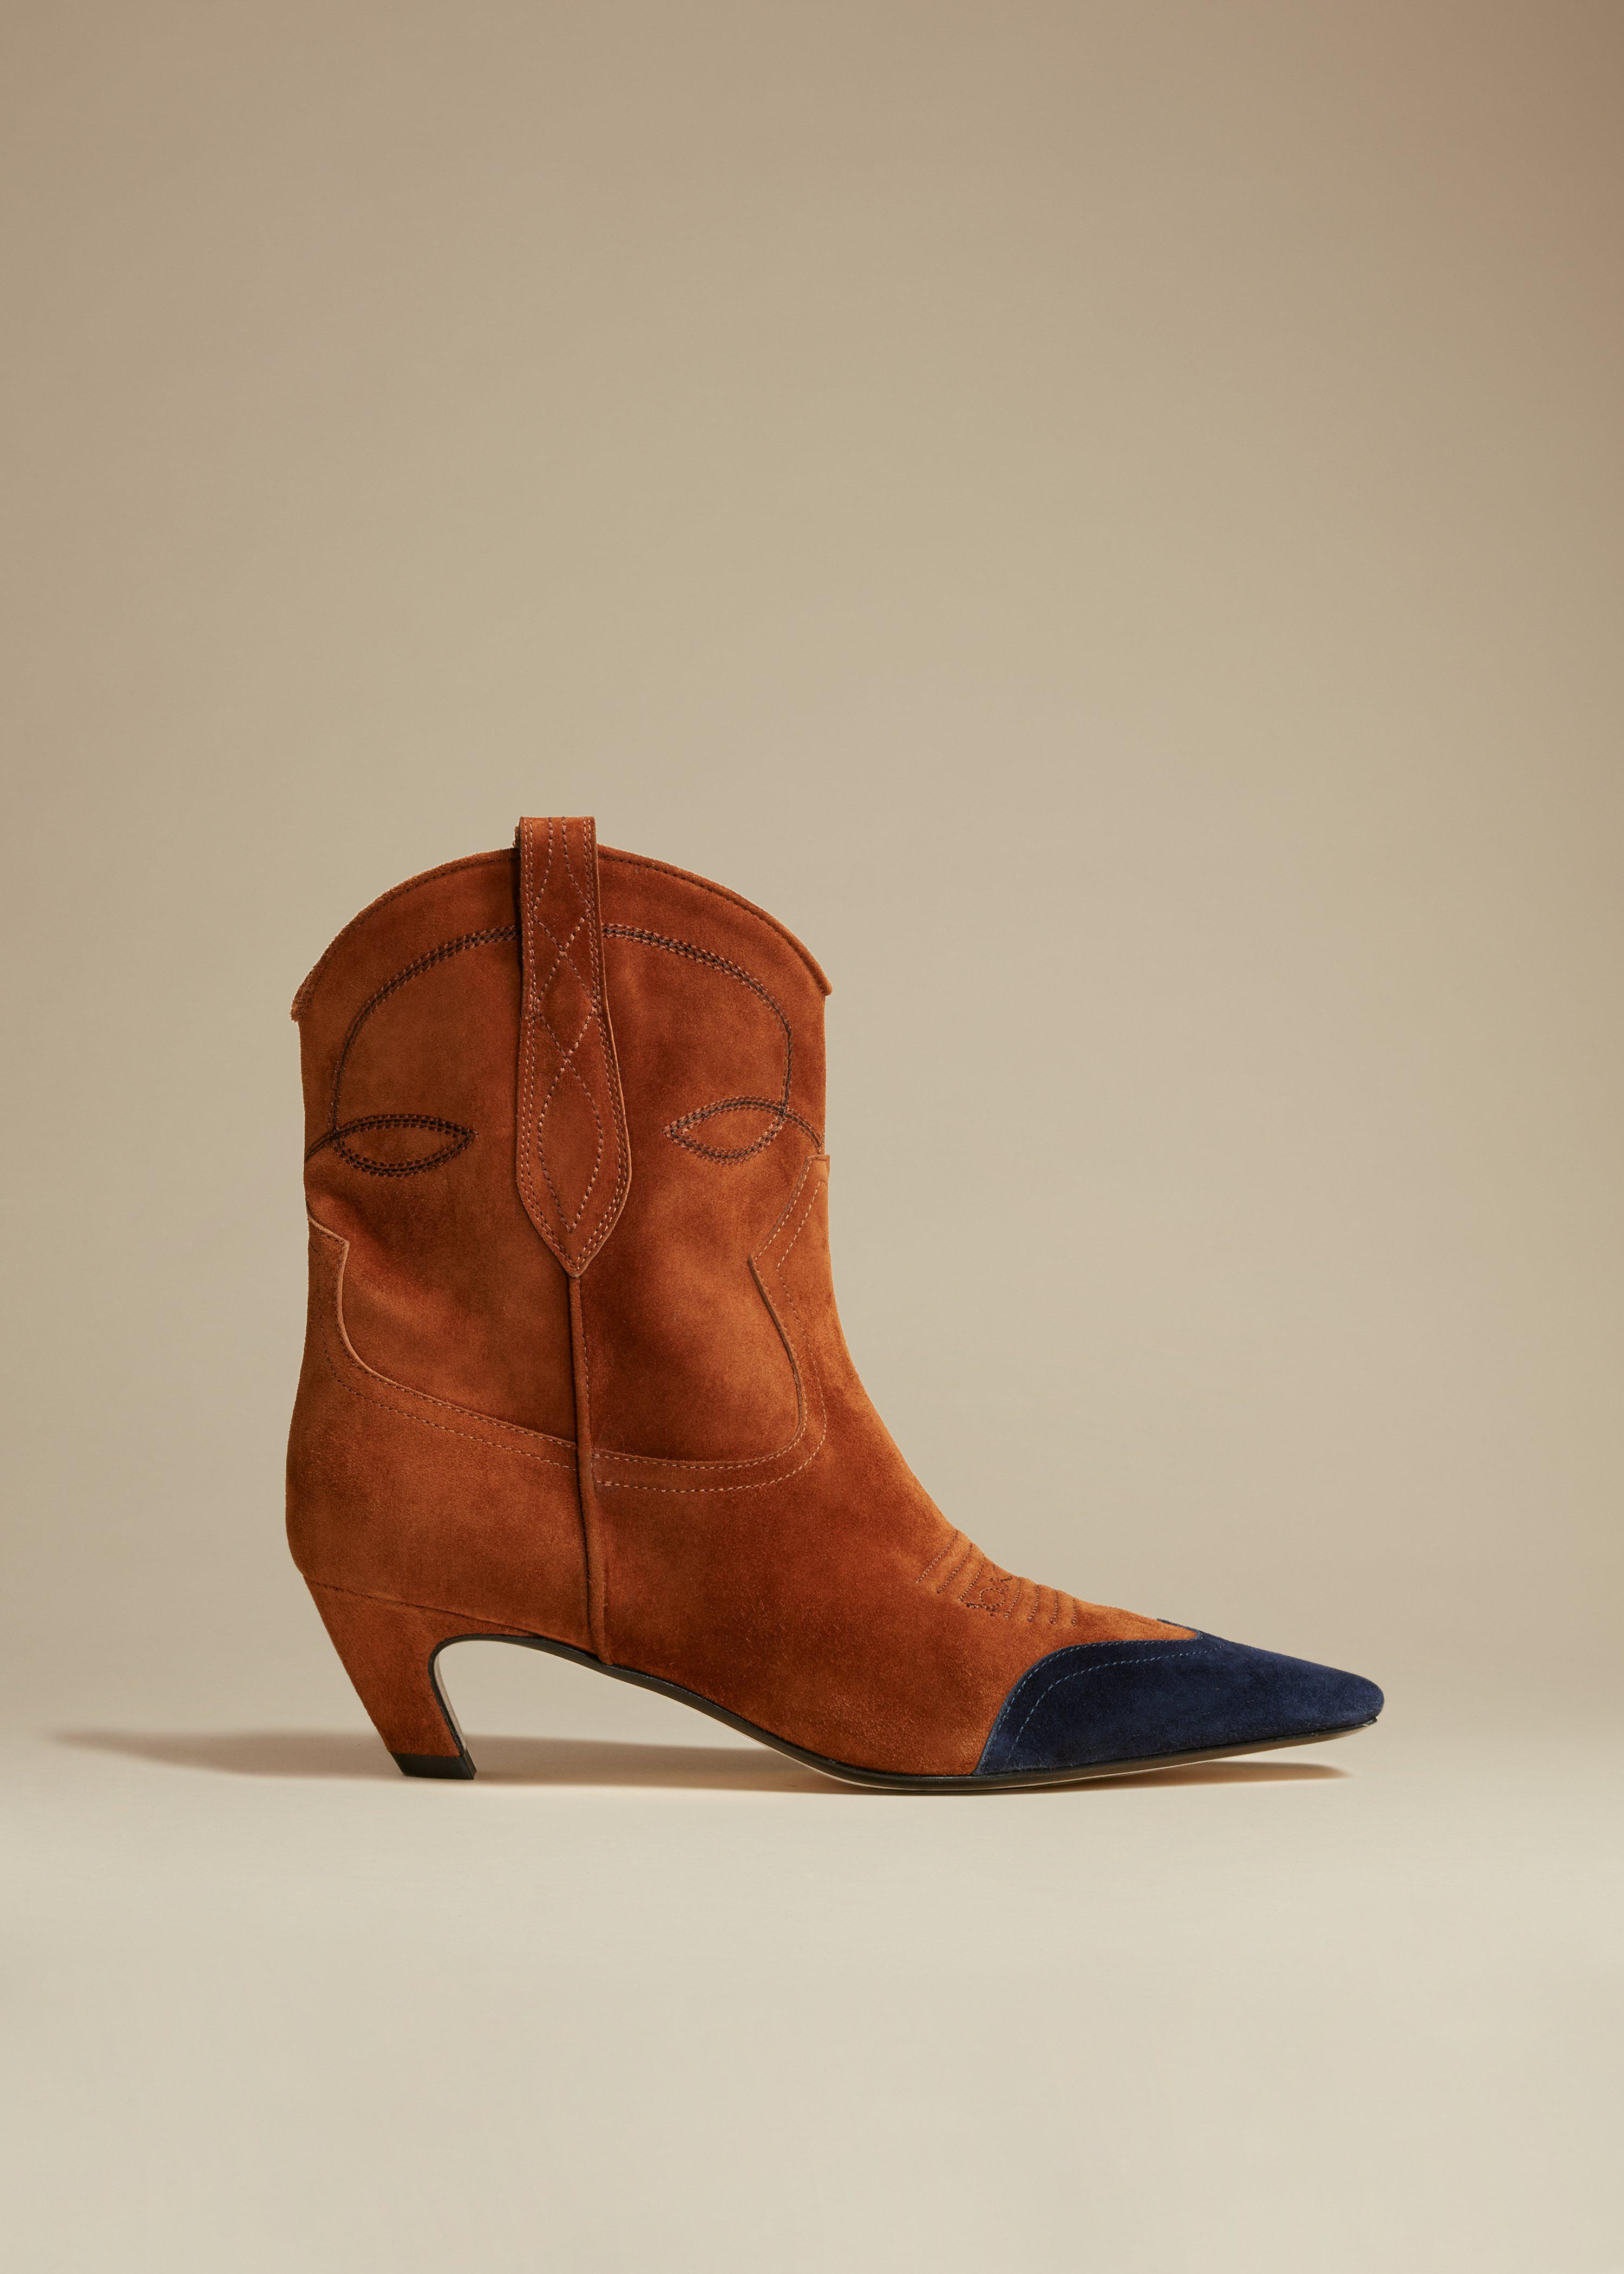 The Dallas Ankle Boot in Caramel and Navy Suede